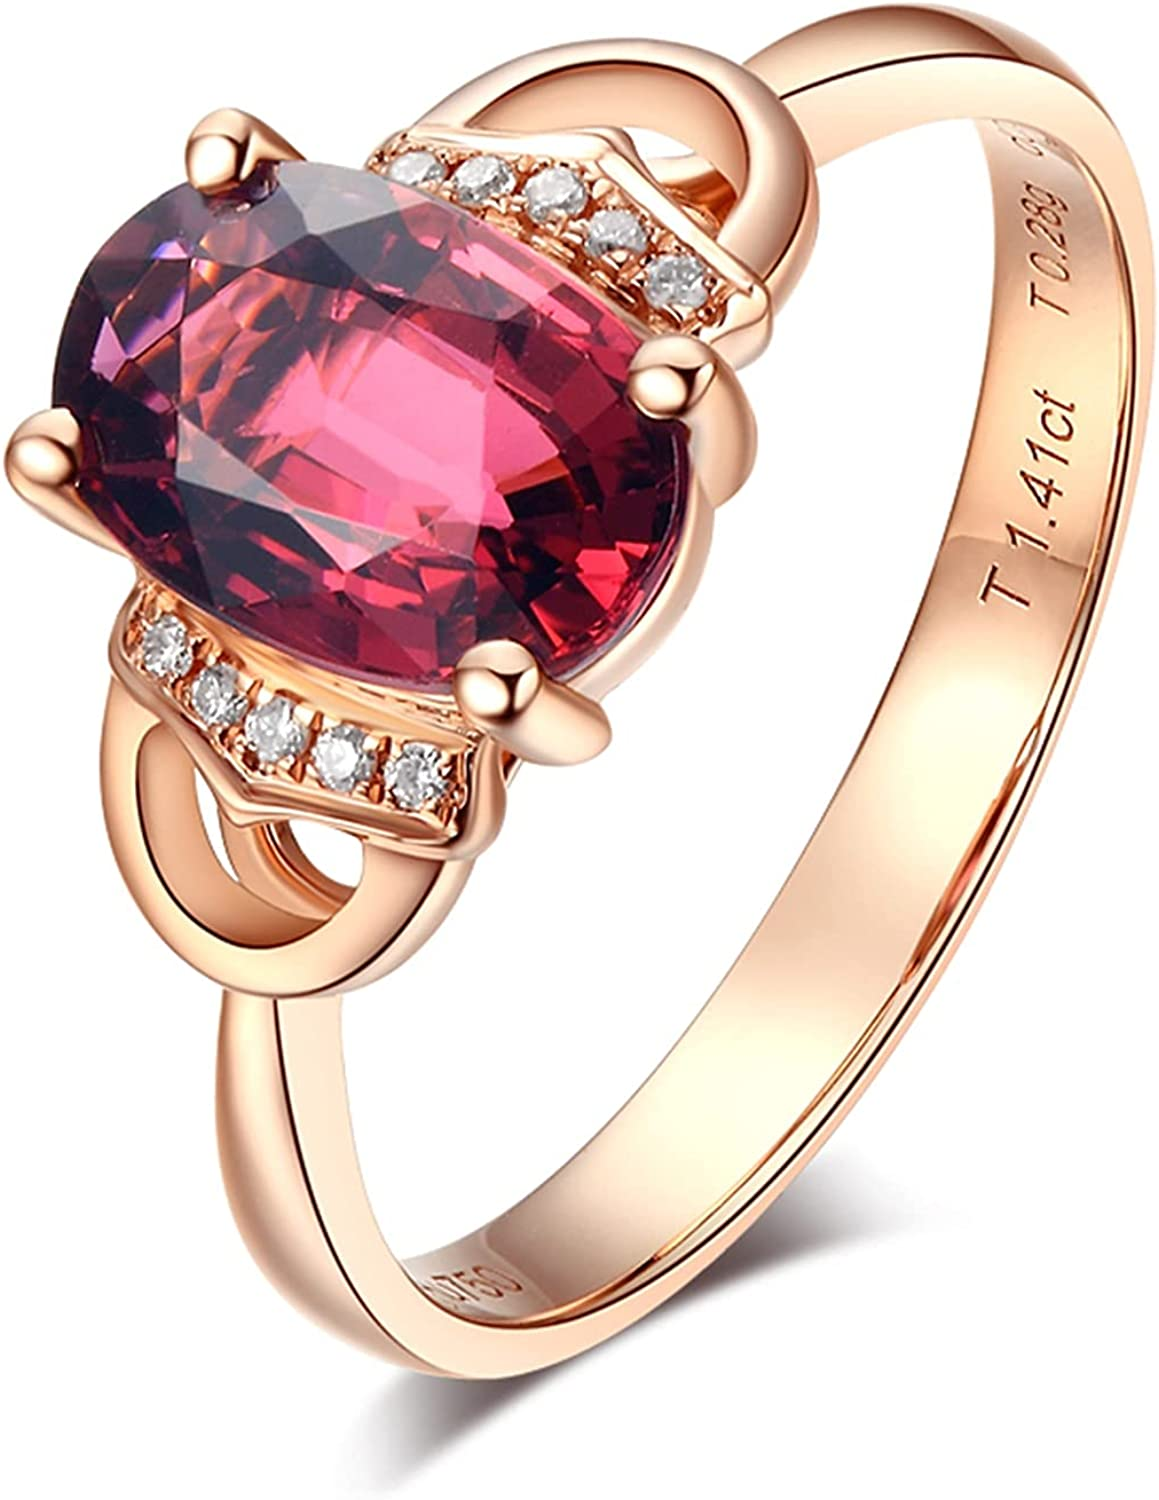 Aokarry Womens Wedding Engagement Ring 1.4ct Rose Tour Gold 18k wholesale Recommendation